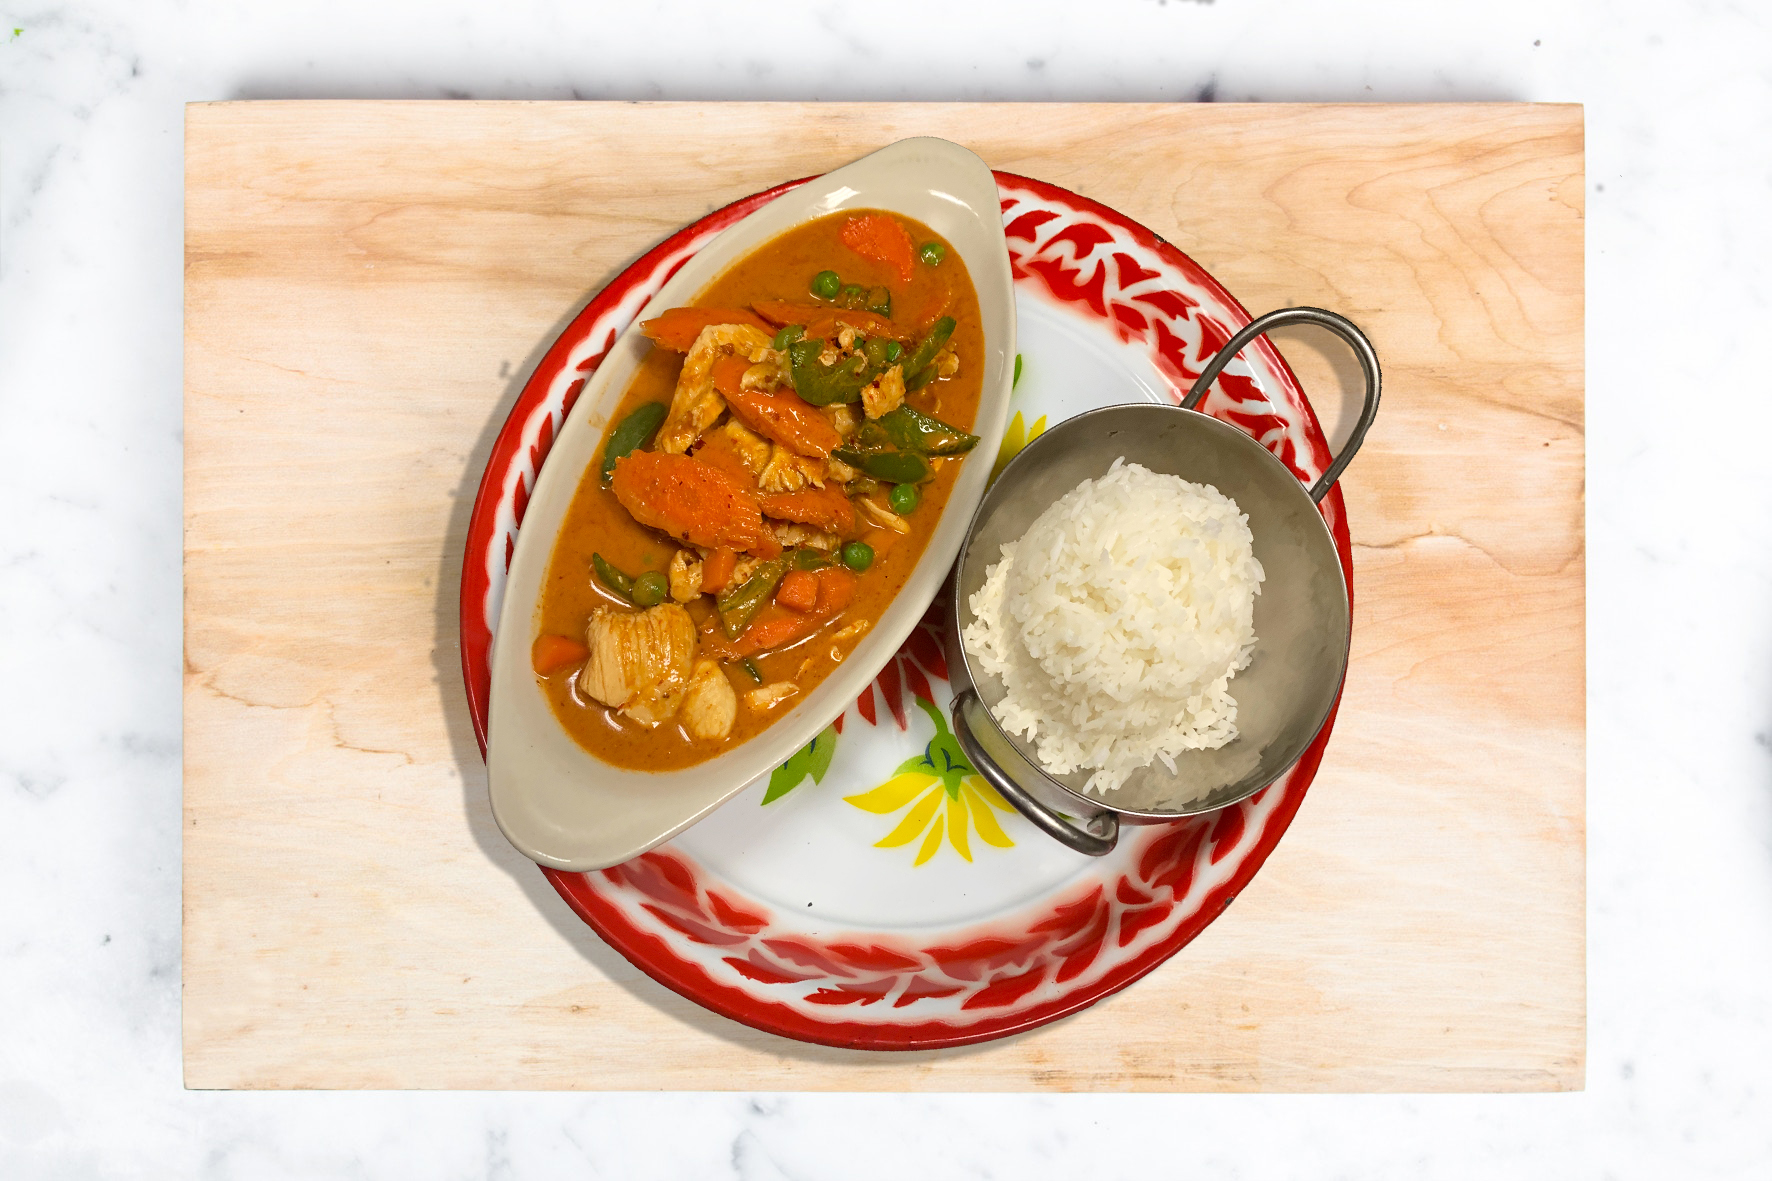 70. Panang curry with chicken (Chef's recommendation!)